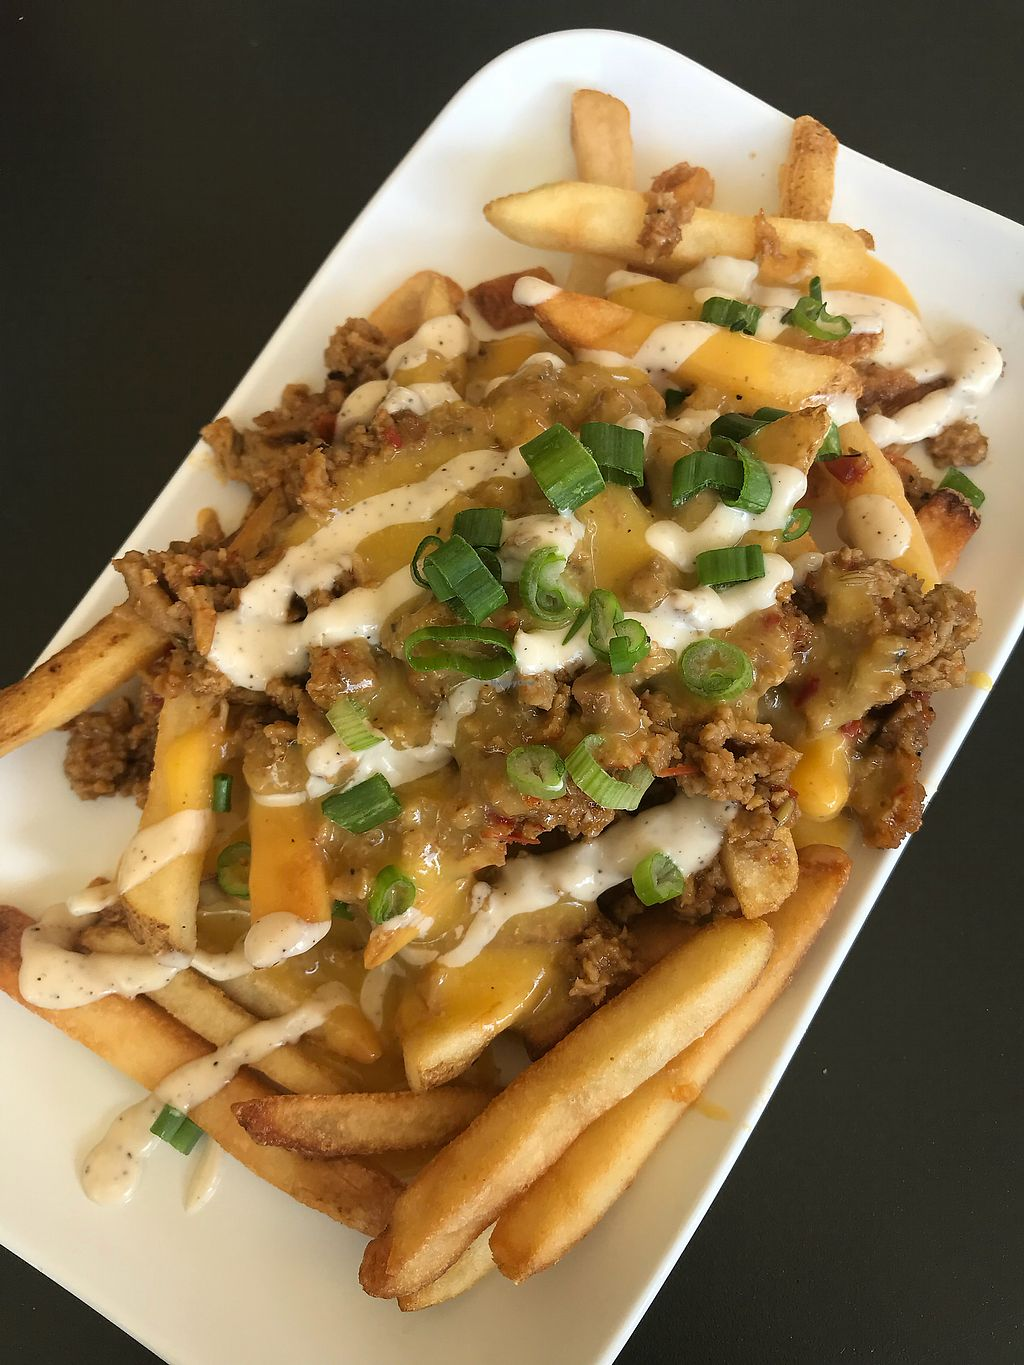 """Photo of Green Bar and Kitchen  by <a href=""""/members/profile/VictoriaLozada"""">VictoriaLozada</a> <br/>Loaded fries! <br/> February 23, 2018  - <a href='/contact/abuse/image/36631/362859'>Report</a>"""